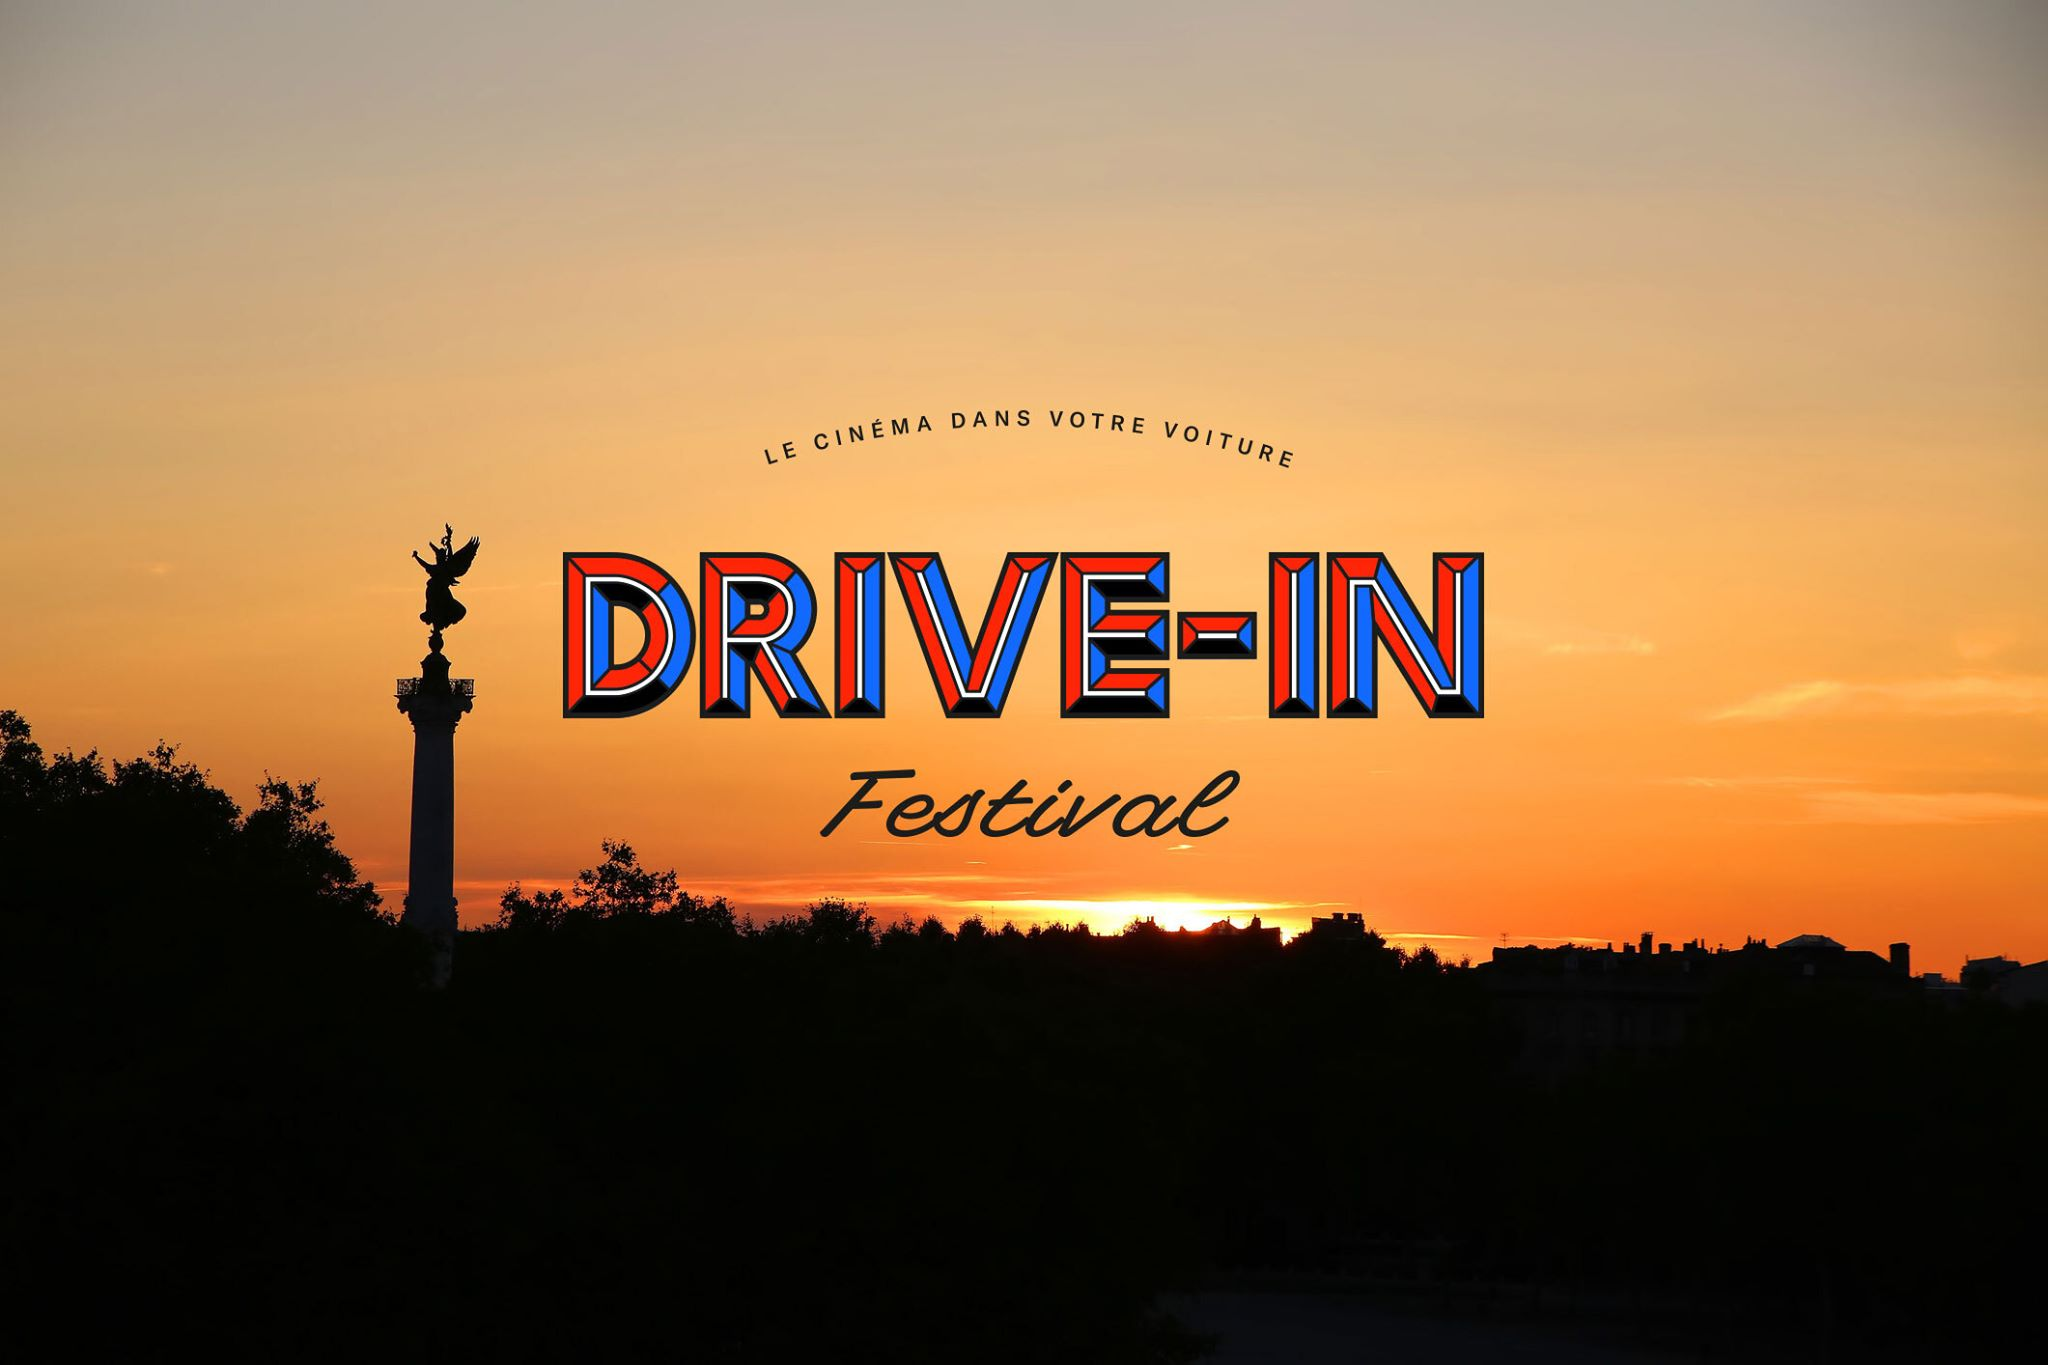 https://the-place-to-be.fr/wp-content/uploads/2020/05/drinve-in-festival-bordeaux-cinema-plein-air-deconfinement-place-des-quinconces-mai-2020.jpg